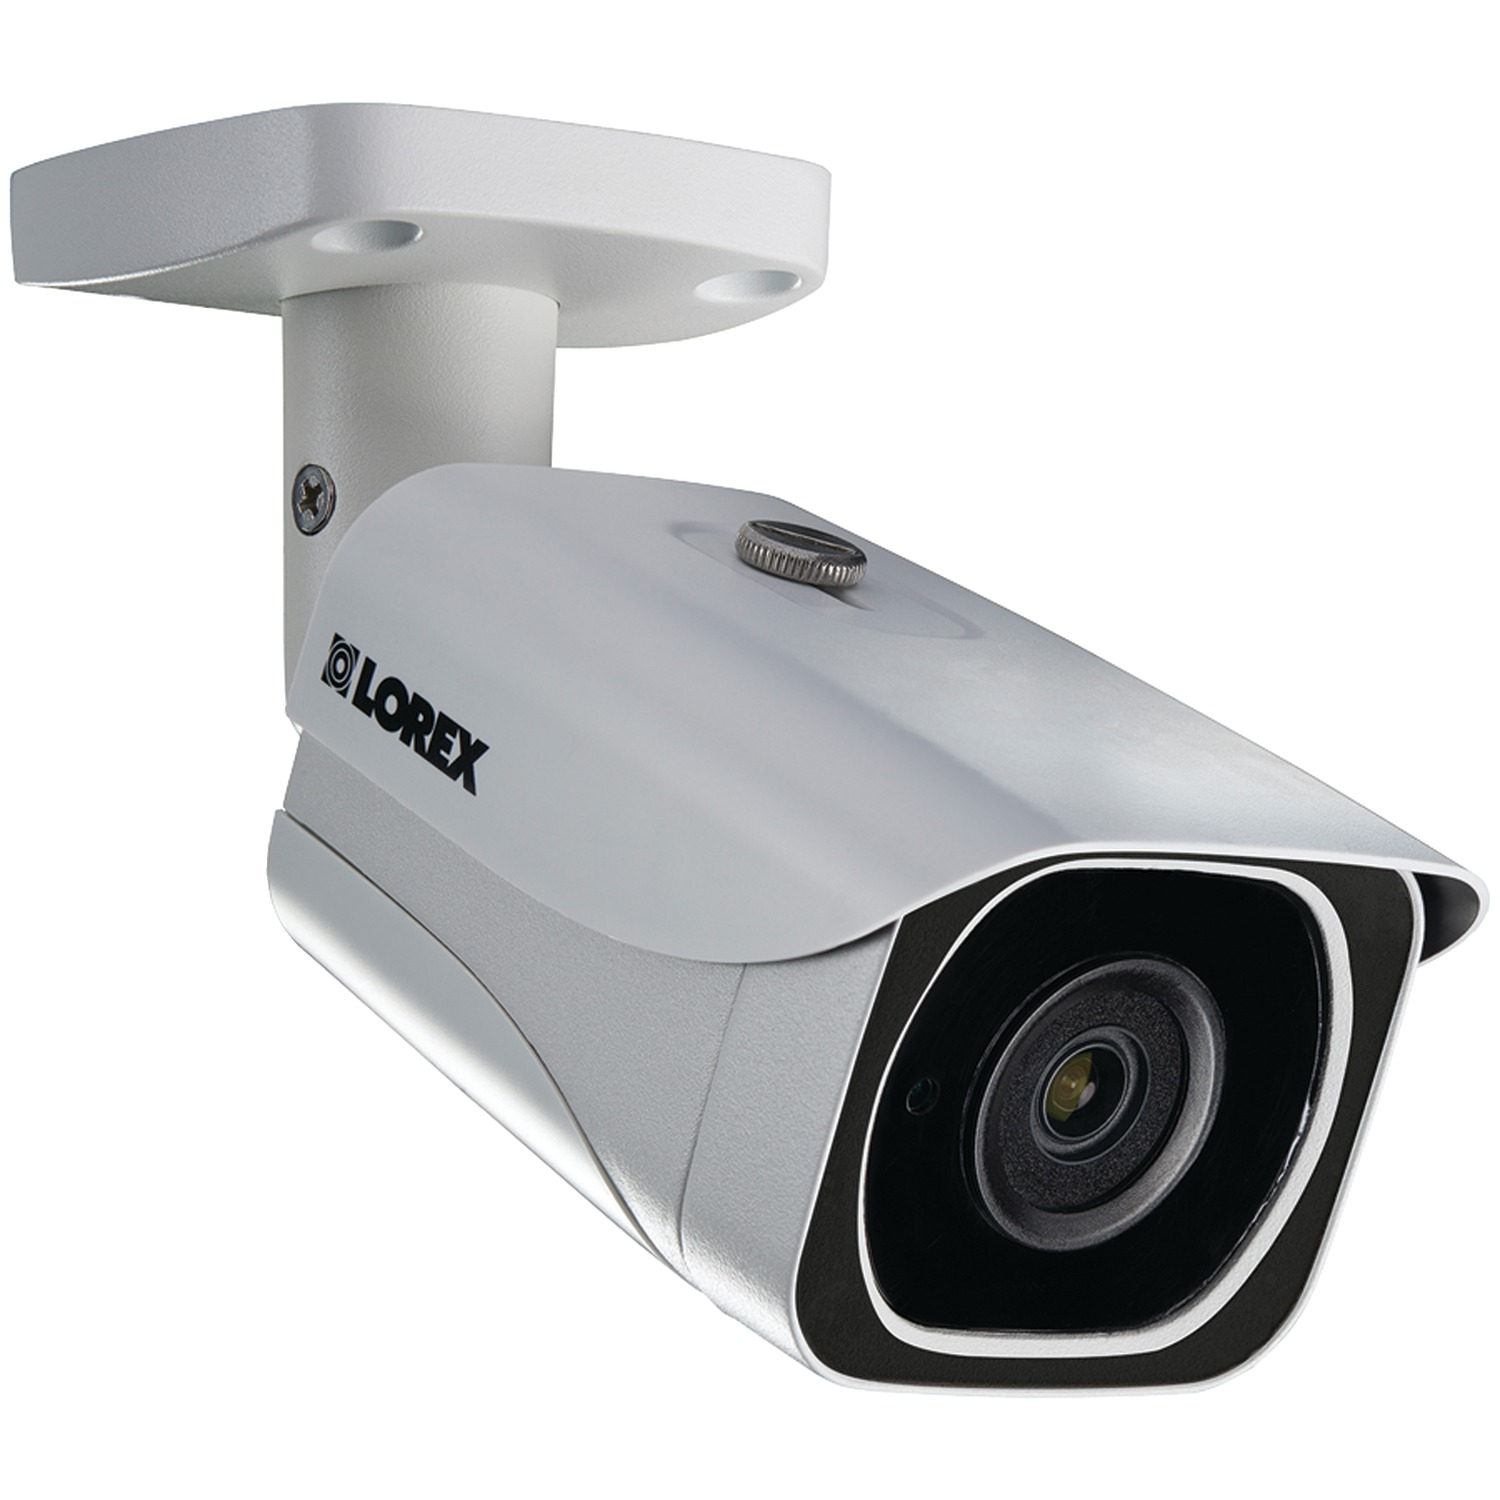 Camera Surveillance Exterieur Costco Lorex By Flir Lnb8111b 8 Megapixel Ultra Hd Bullet Camera